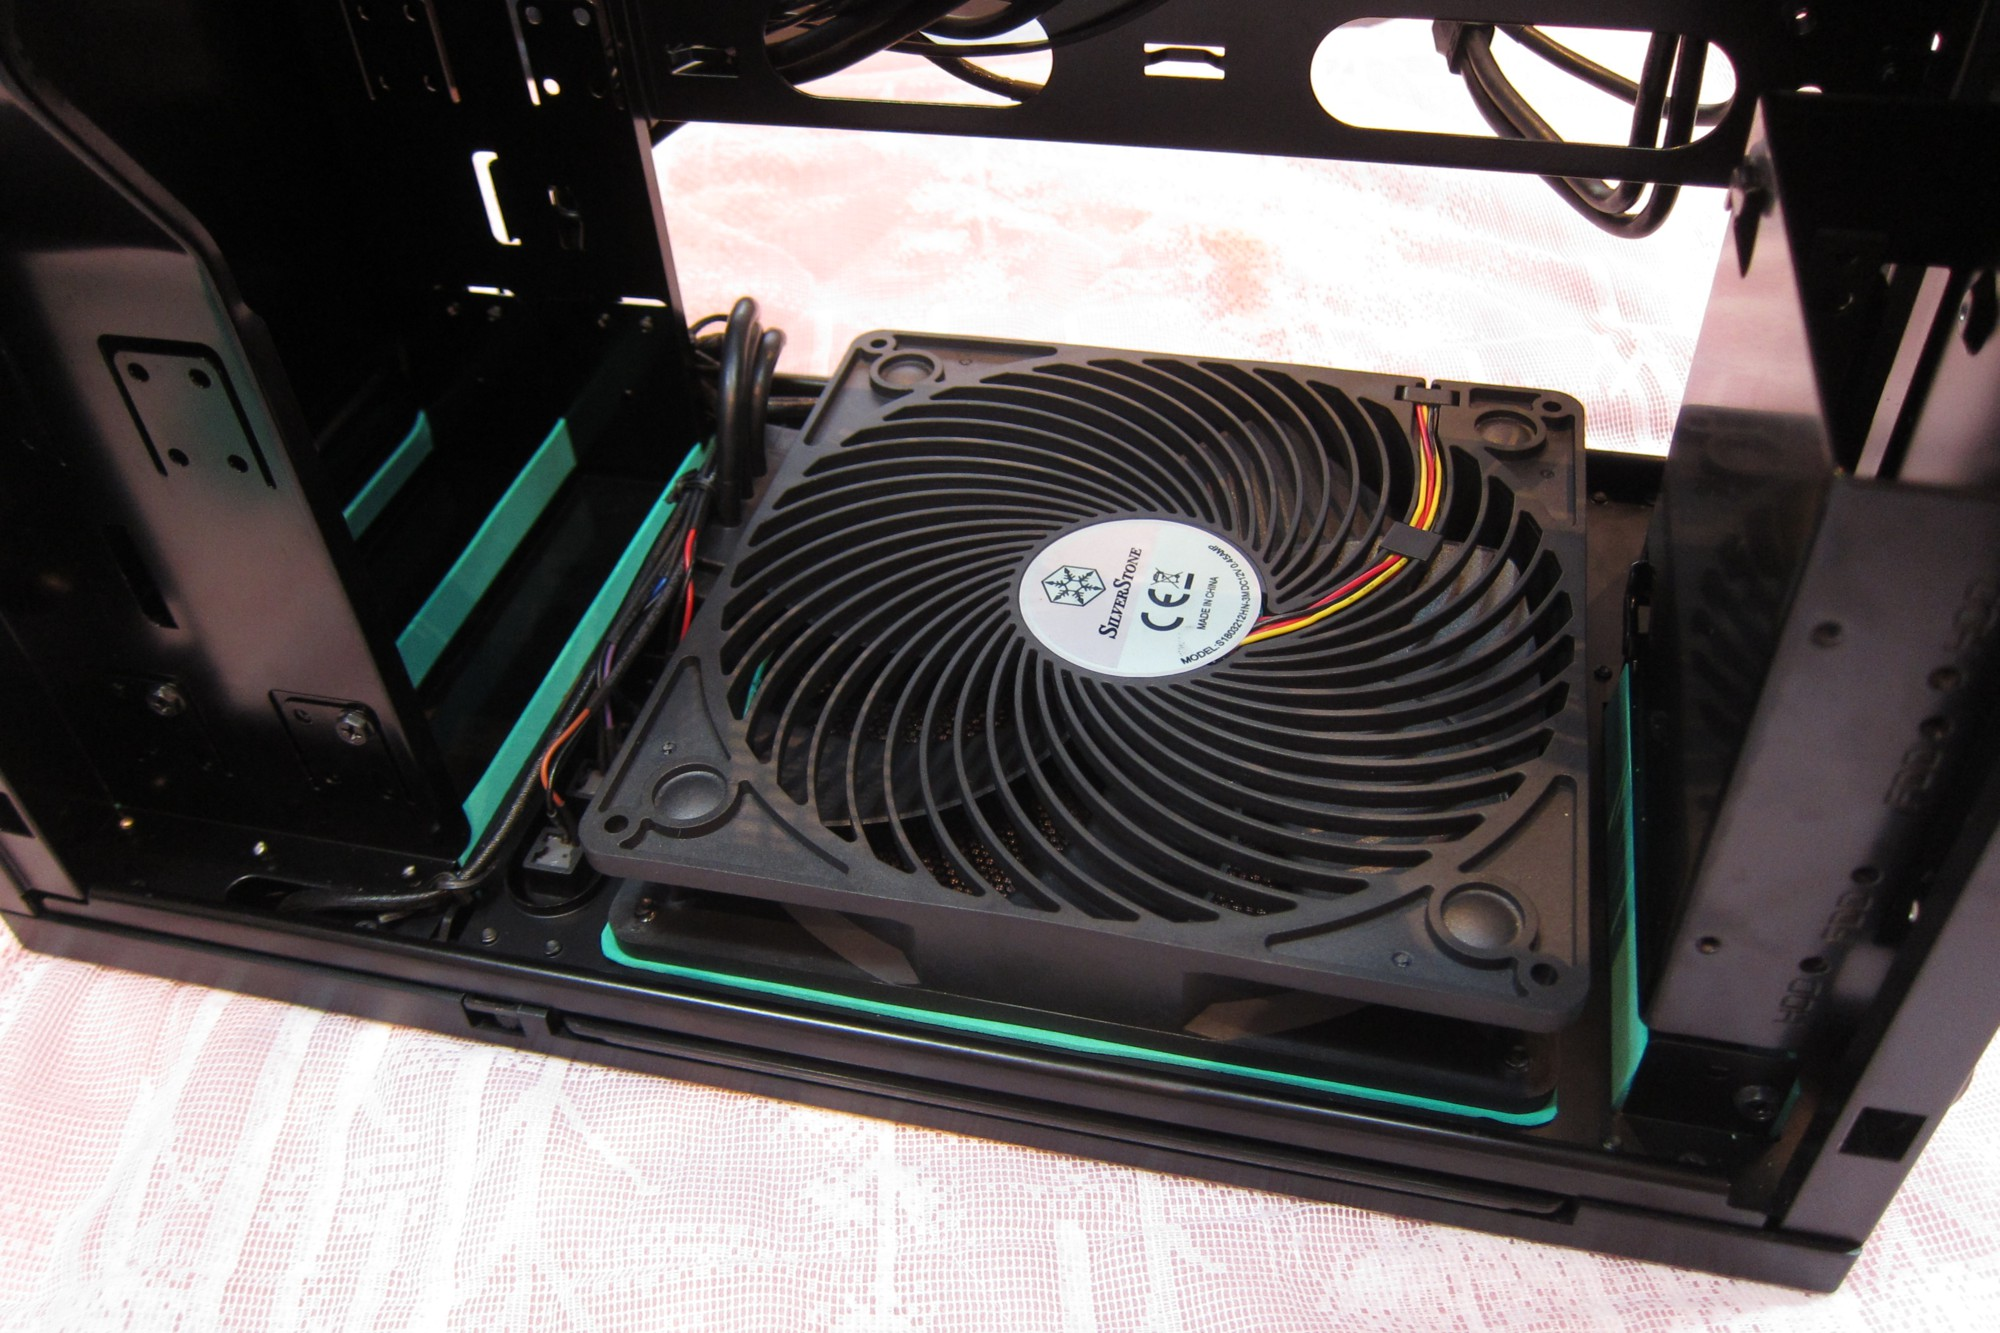 Cut 1.5mm cushion mat for front fan. Then used to block up the large gaps aroung 3.5 bay cover, then decided to continue the theme at 5 inch bay covers also.